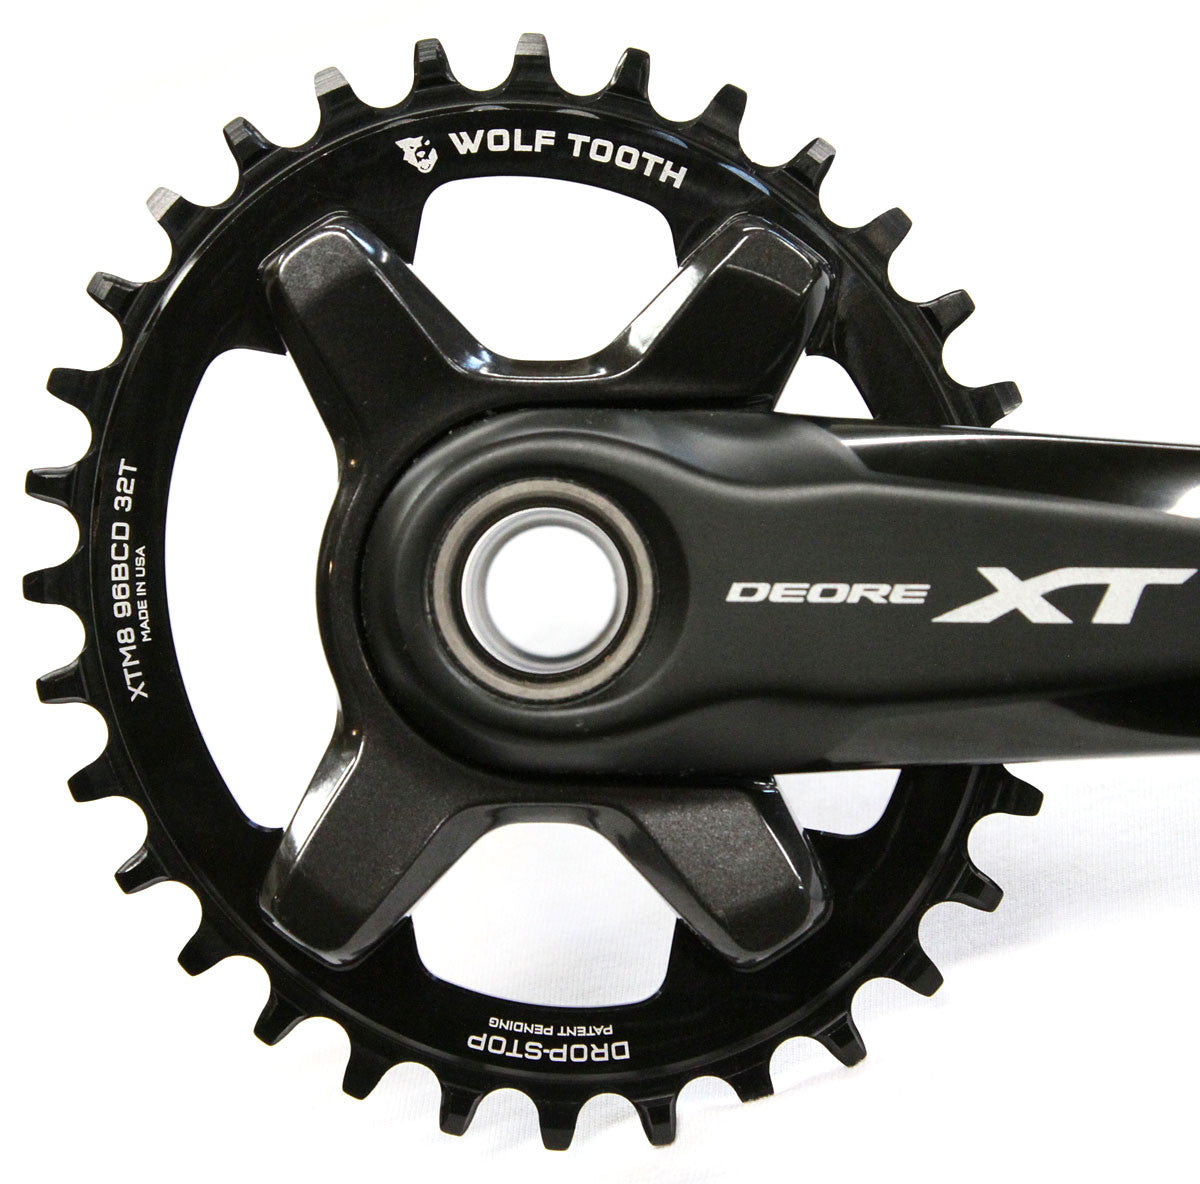 Oval Chainring BCD96 for Shimano XT M8000 M7000 Narrow wide 1xSystem 32T to 38T